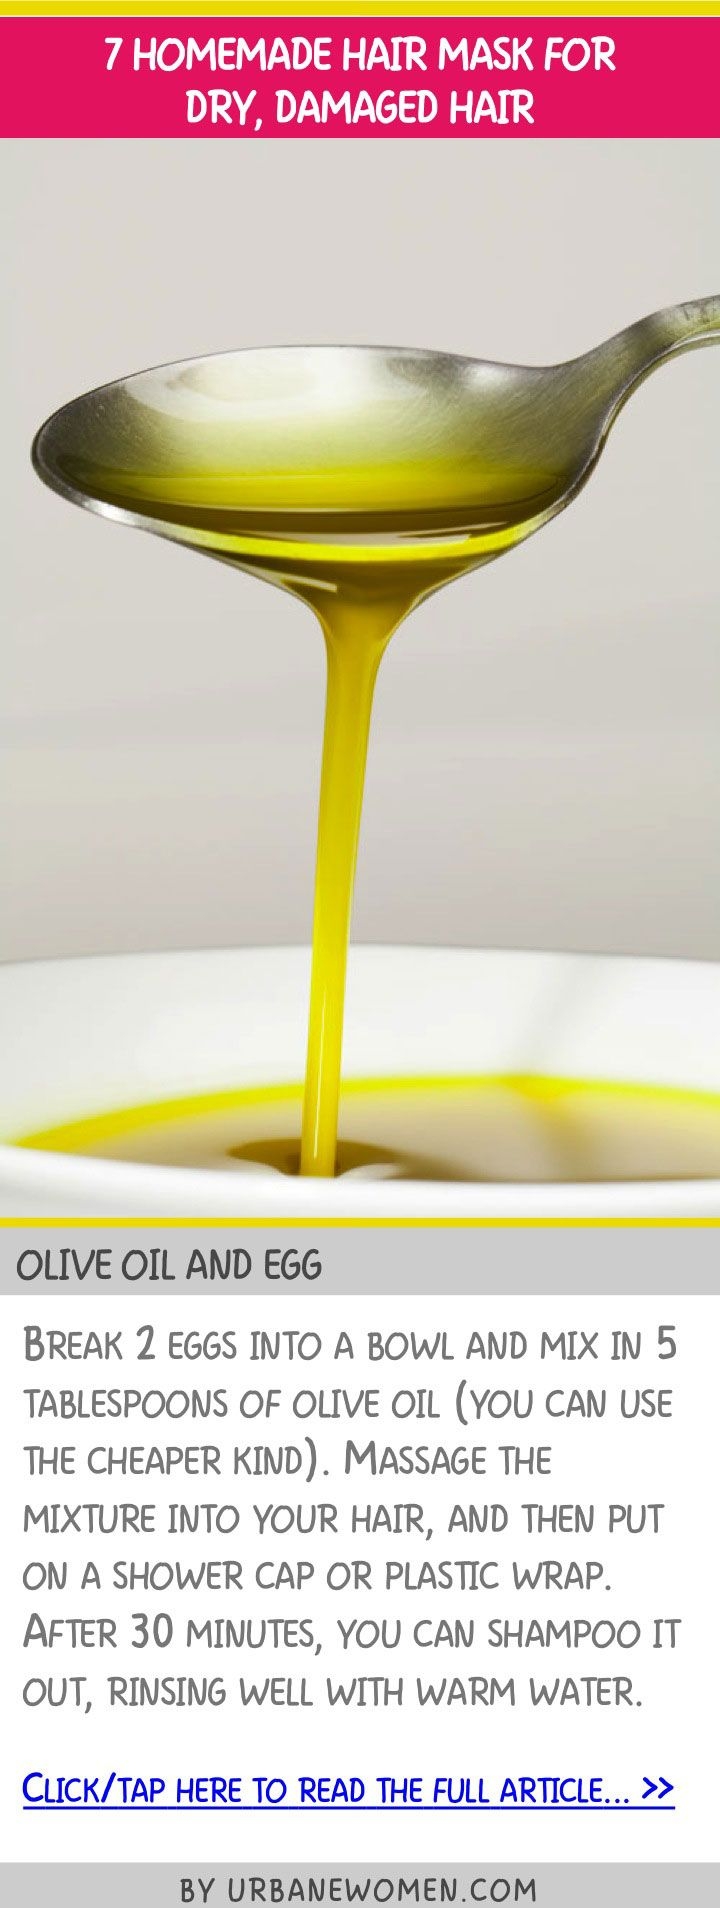 7 homemade hair mask for dry, damaged hair - Olive oil and egg